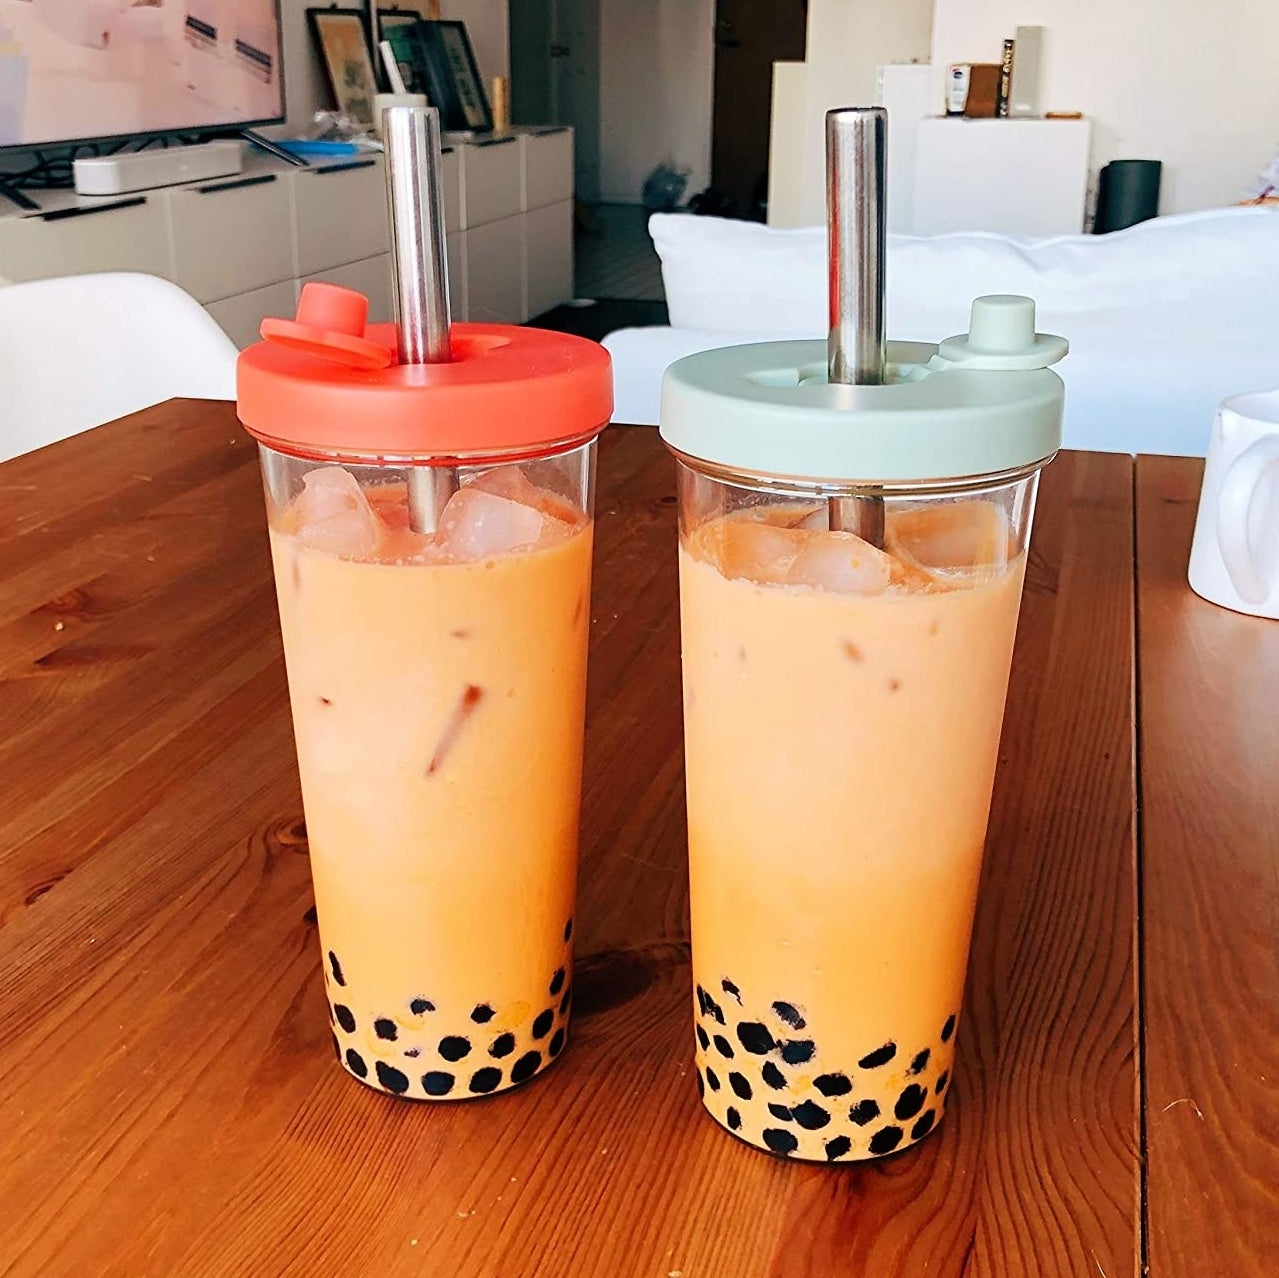 Two reusable boba cups filled with bubble tea